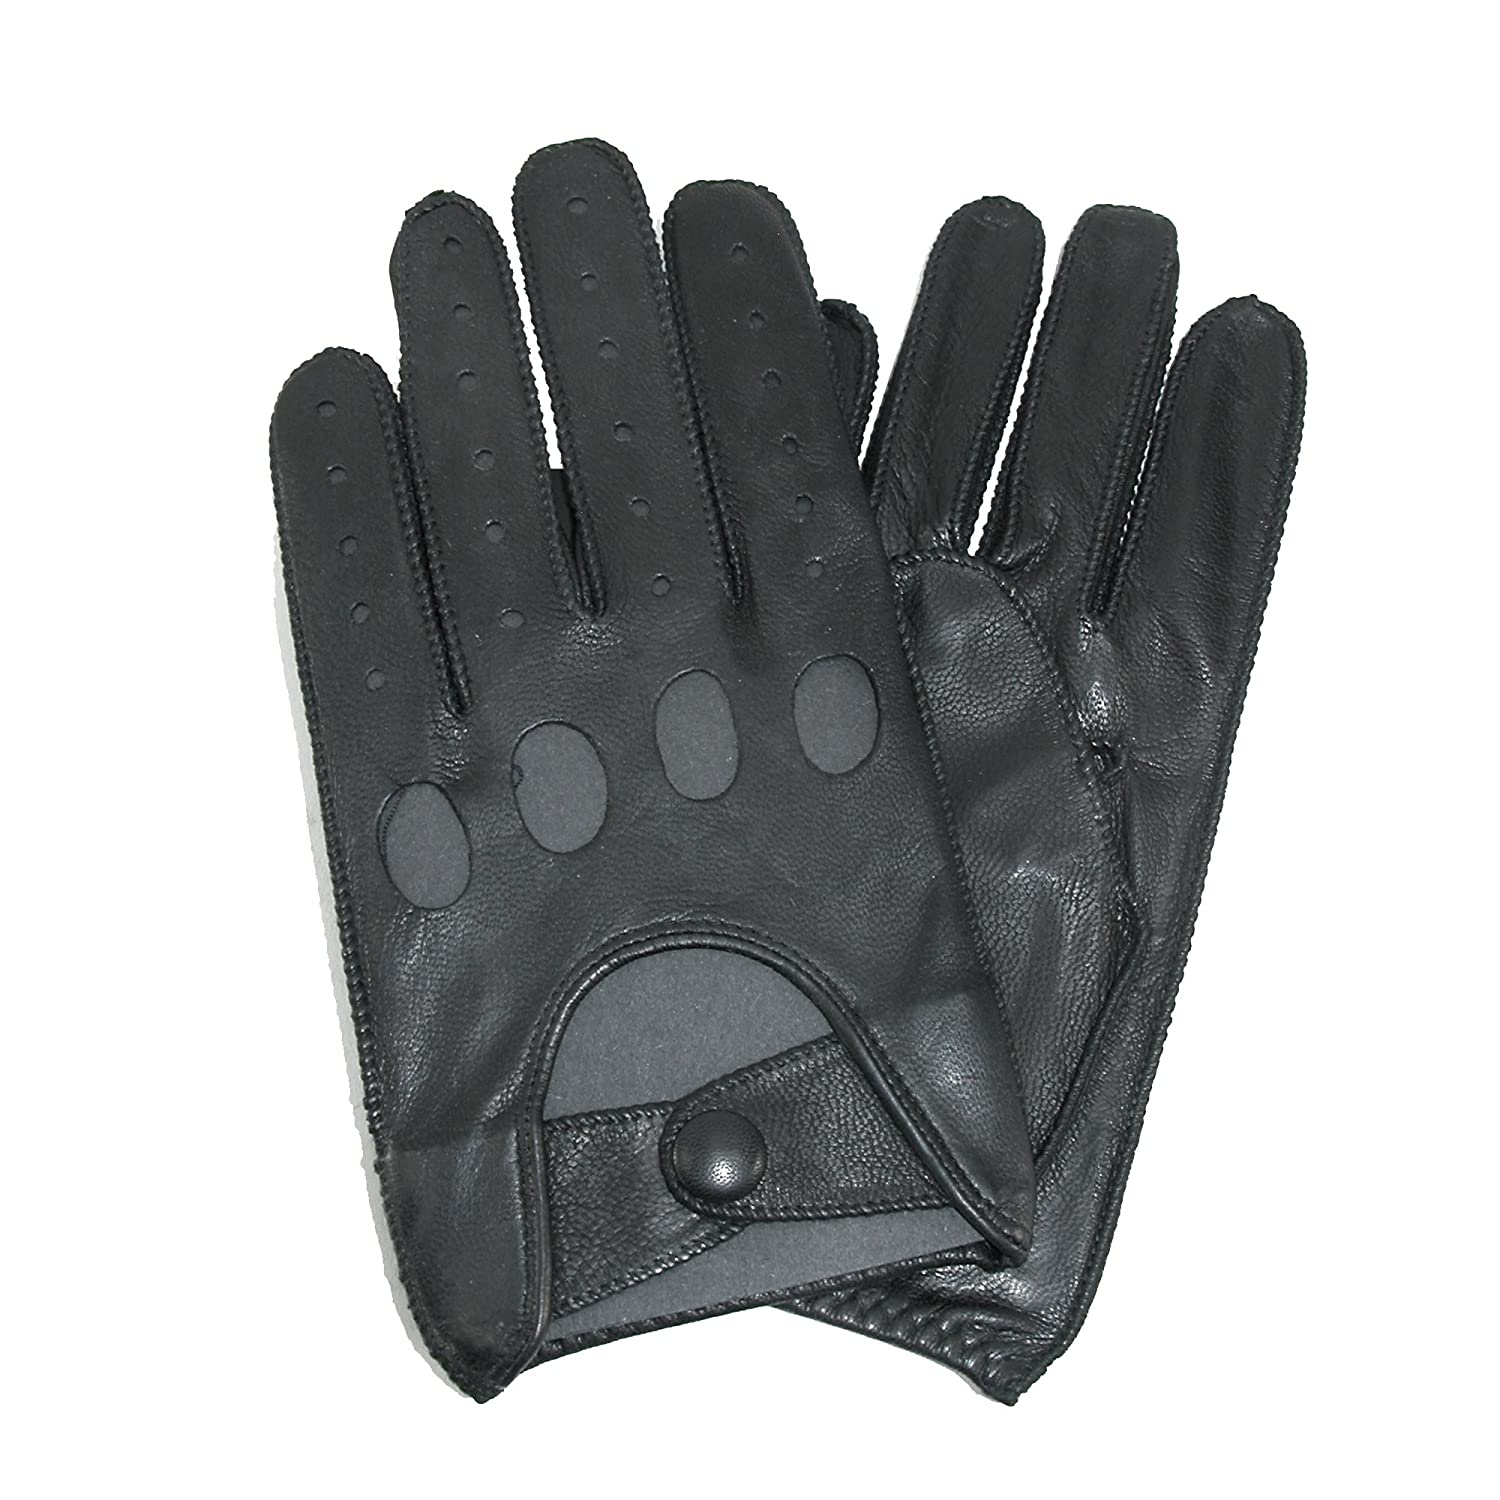 Mens leather gloves grey - Isotoner Men S Smooth Leather Driving Glove With Covered Snap Brown Medium At Amazon Men S Clothing Store Cold Weather Gloves